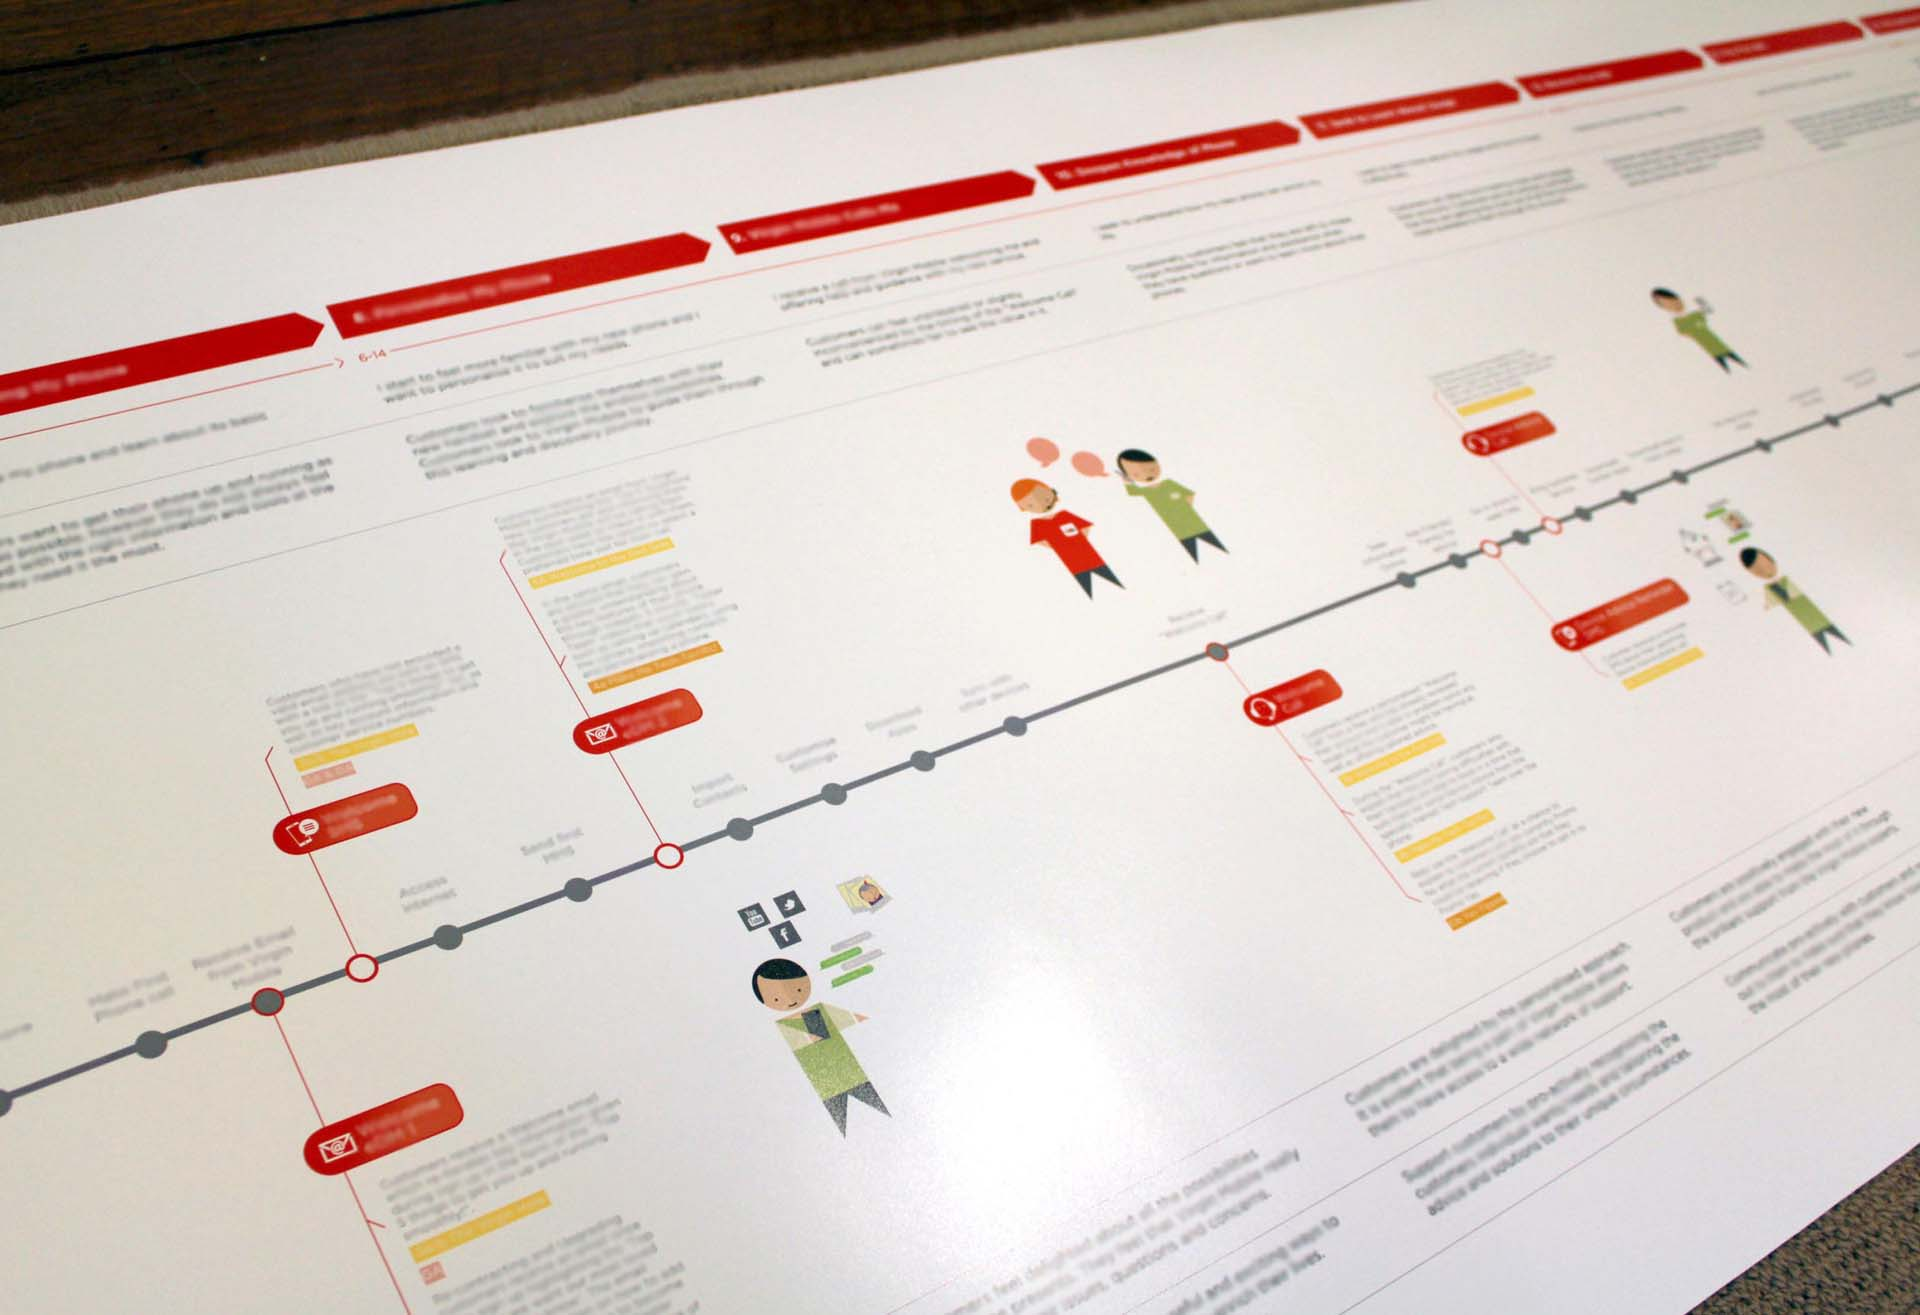 Detail of a Customer Journey Map